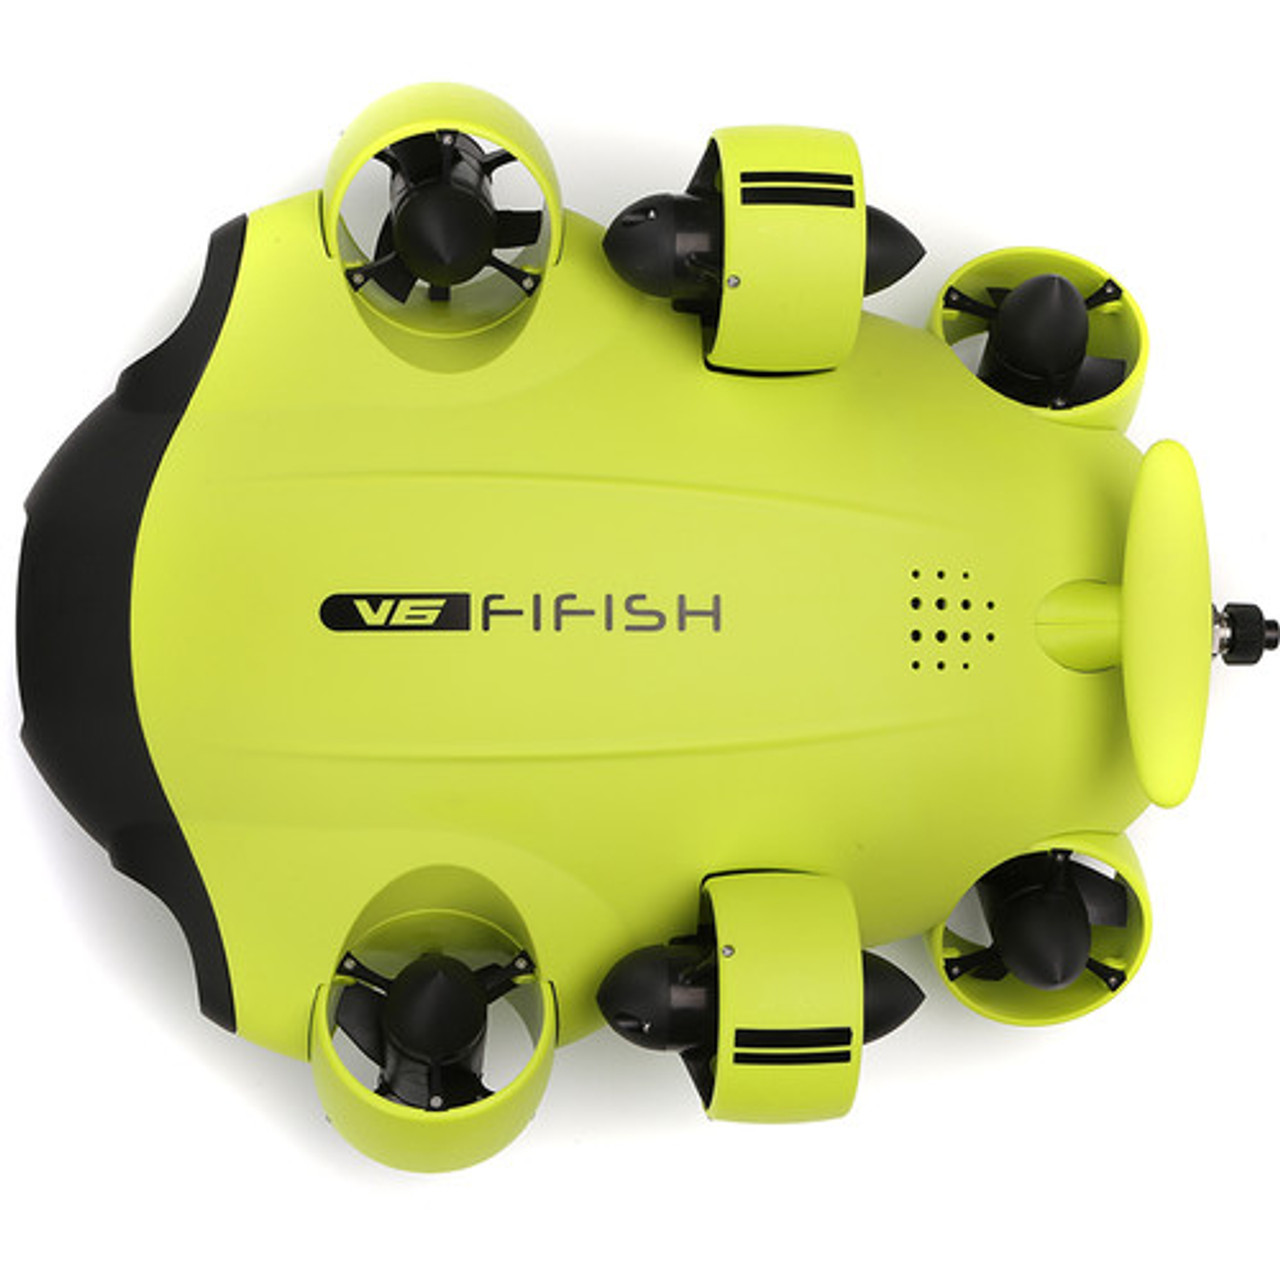 QYSEA FIFISH V6 Underwater ROV Kit (328' Tether, VR Control)